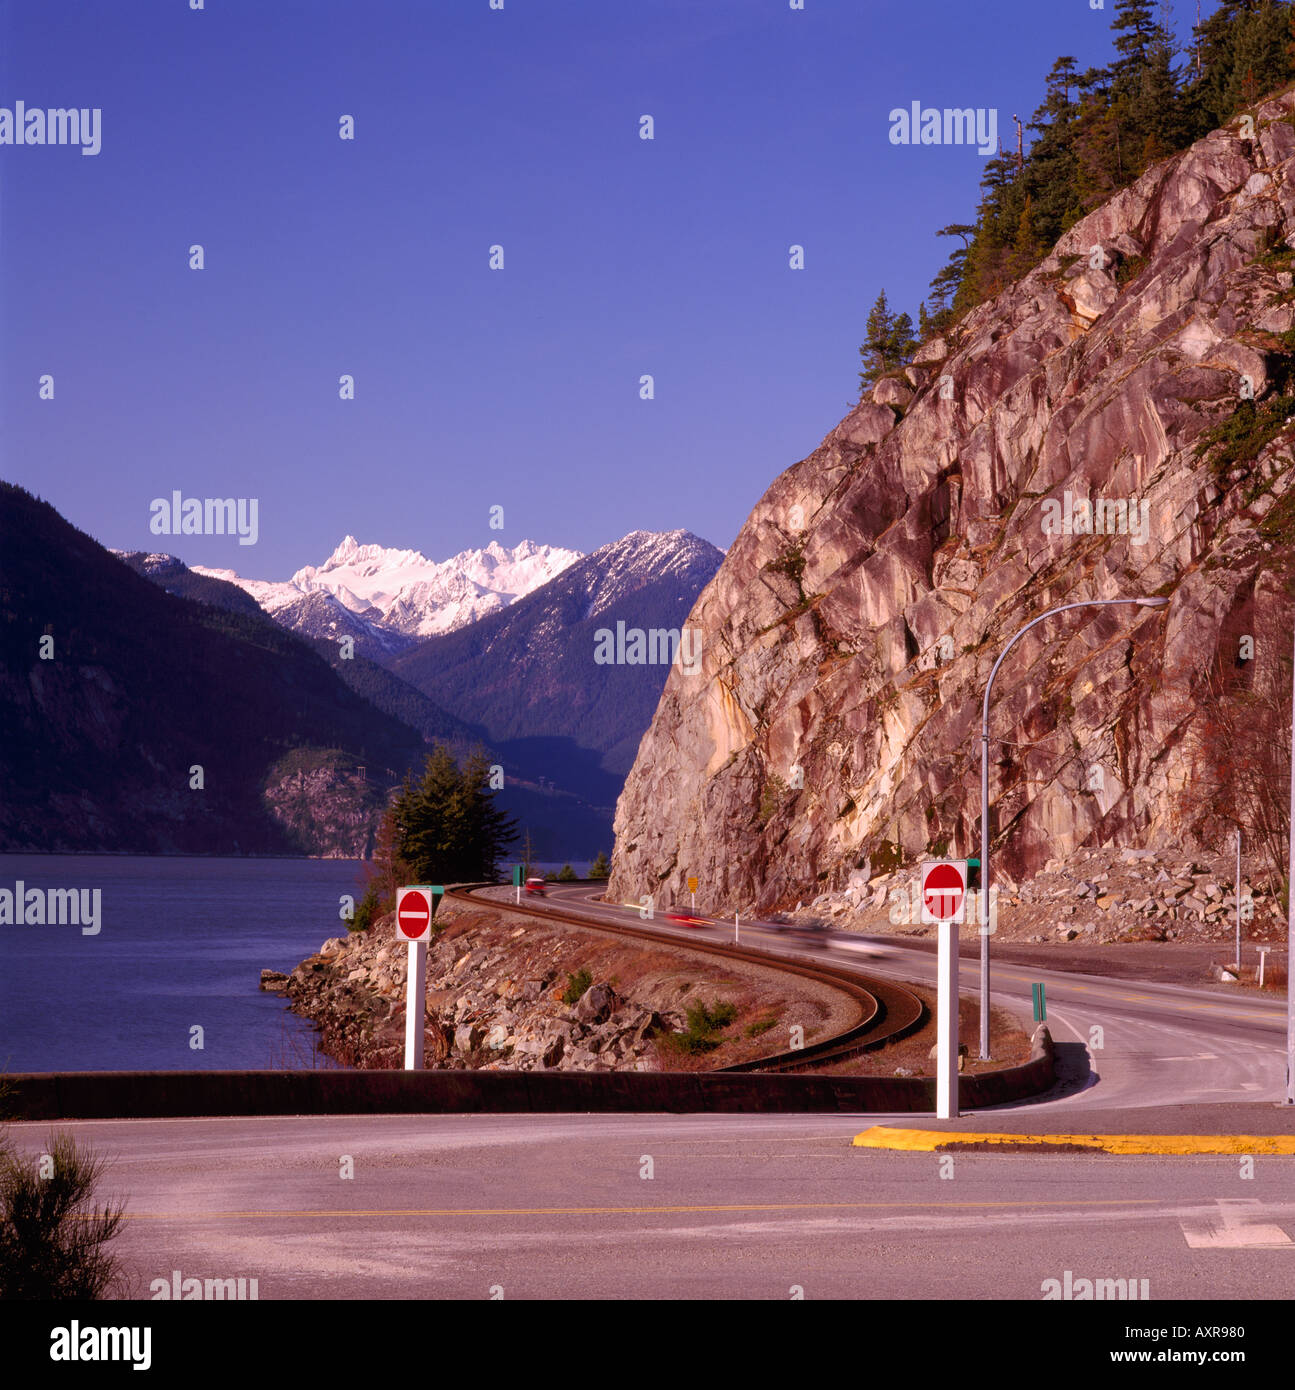 Things To Do In Vancouver - Deals on Activities in Photography supplies vancouver bc